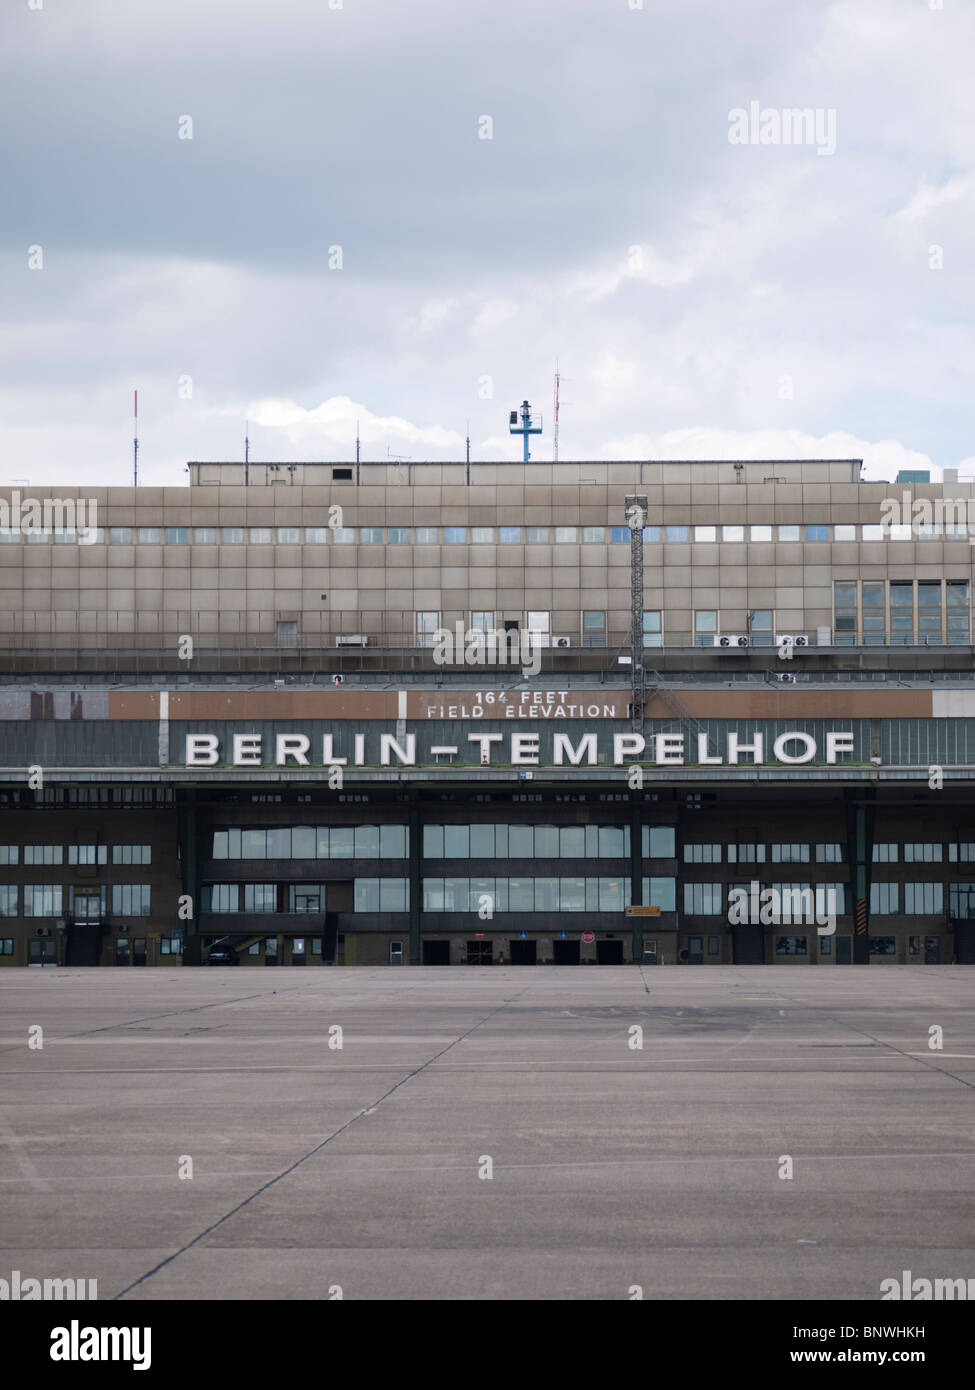 Terminal building at new city public Tempelhofer Park on site of famous former Tempelhof Airport in Berlin Germany - Stock Image